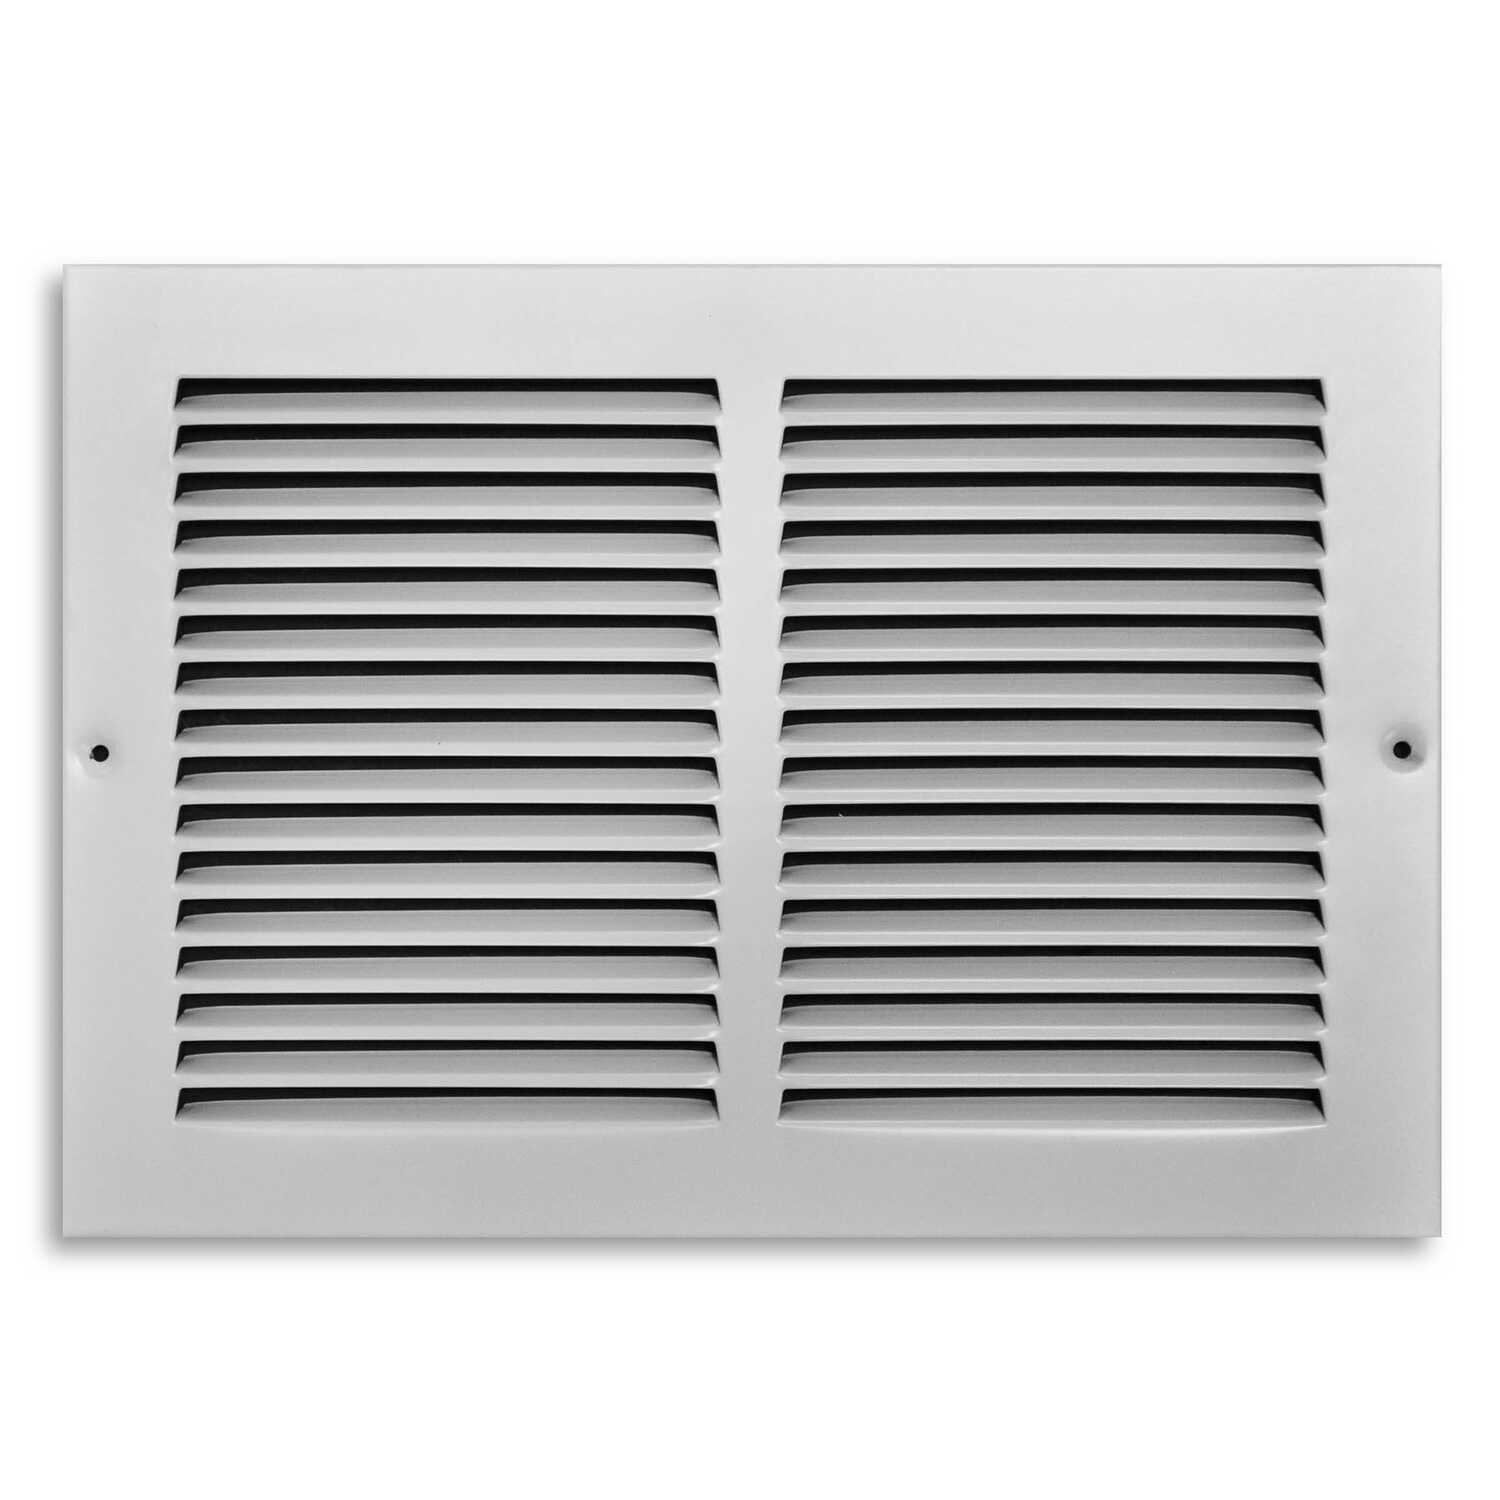 Tru Aire  8 in. H x 1/4 in. D 1-Way  Steel  Return Air Grille  Powder Coat  White